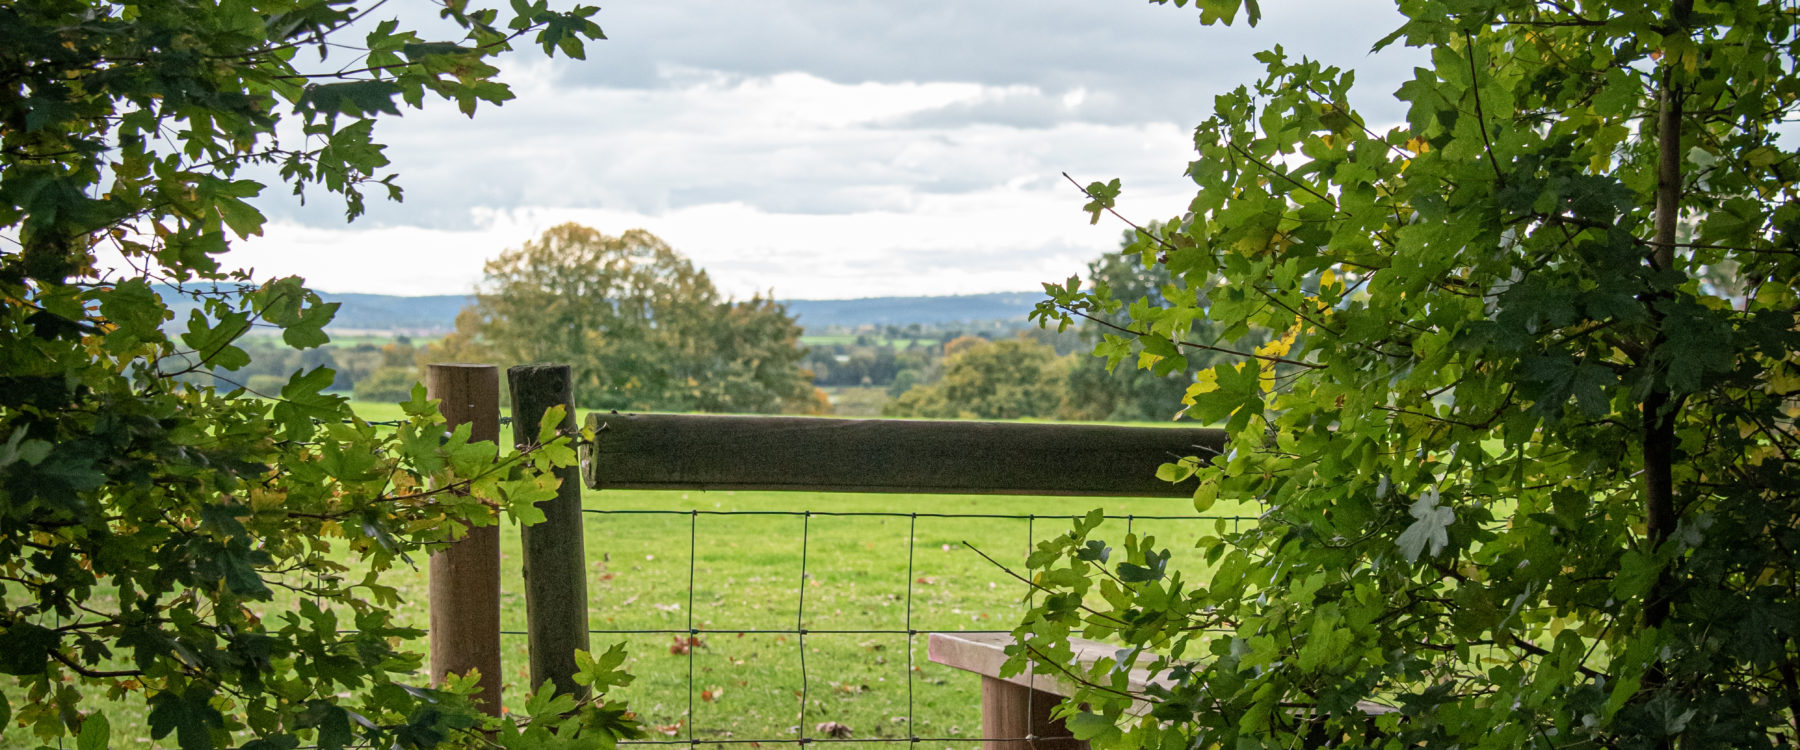 Herefordshire walking - style from Oaker Wood Glamping Village